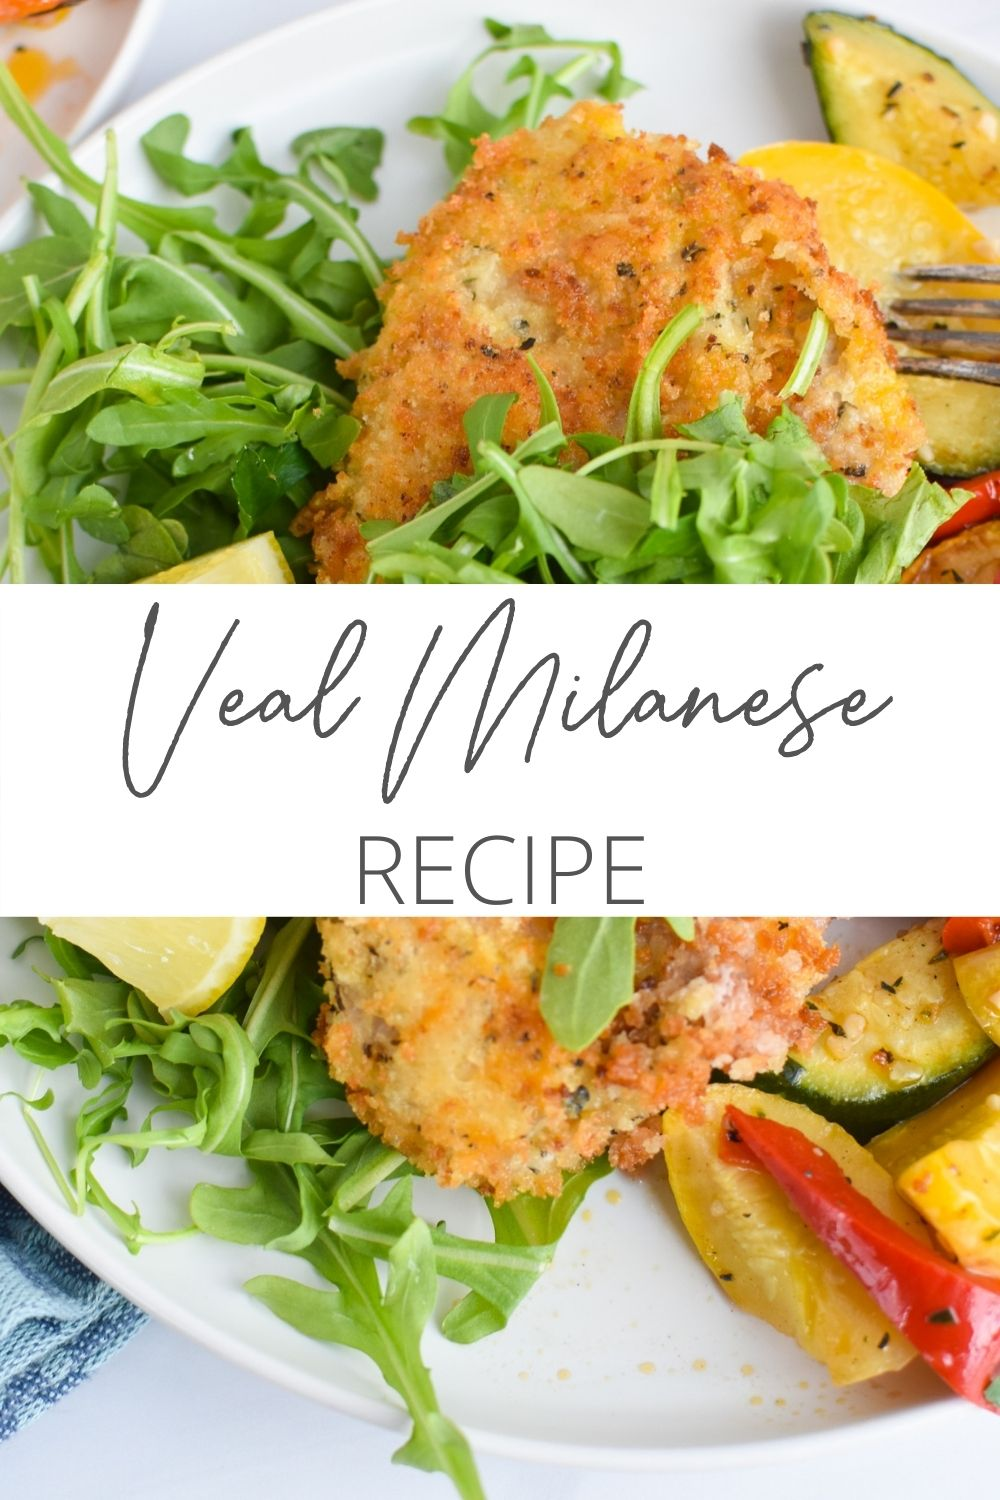 Easy Veal Milanese Recipe with logo.